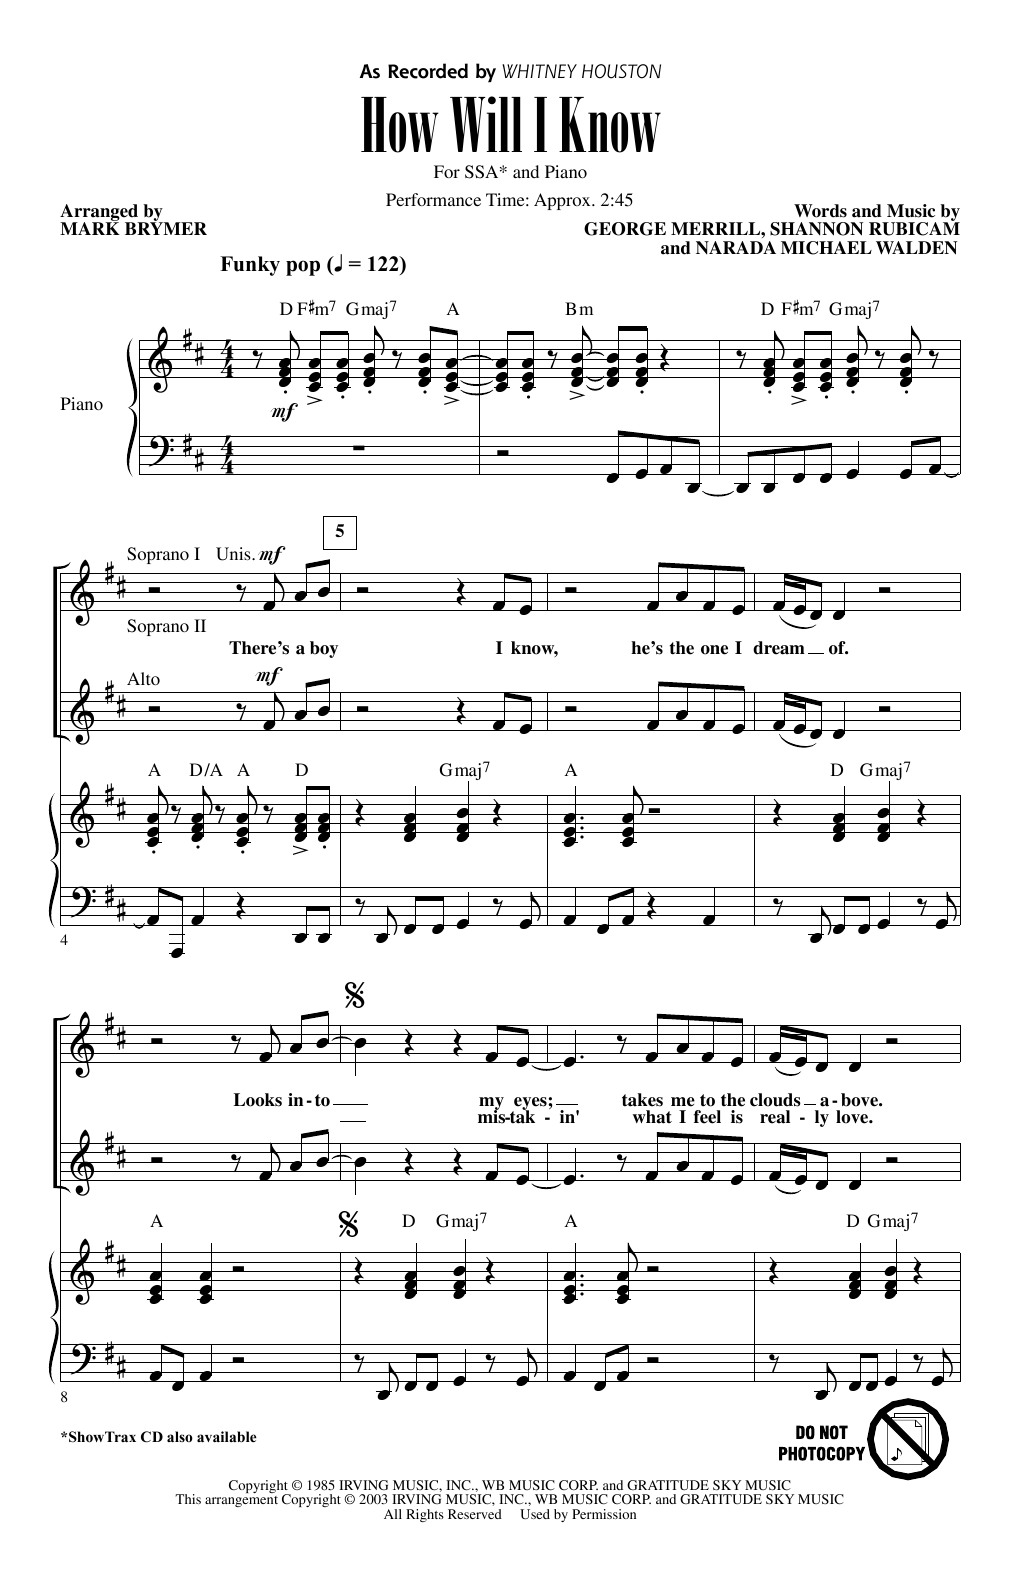 Whitney Houston How Will I Know (arr. Mark Brymer) sheet music notes and chords. Download Printable PDF.